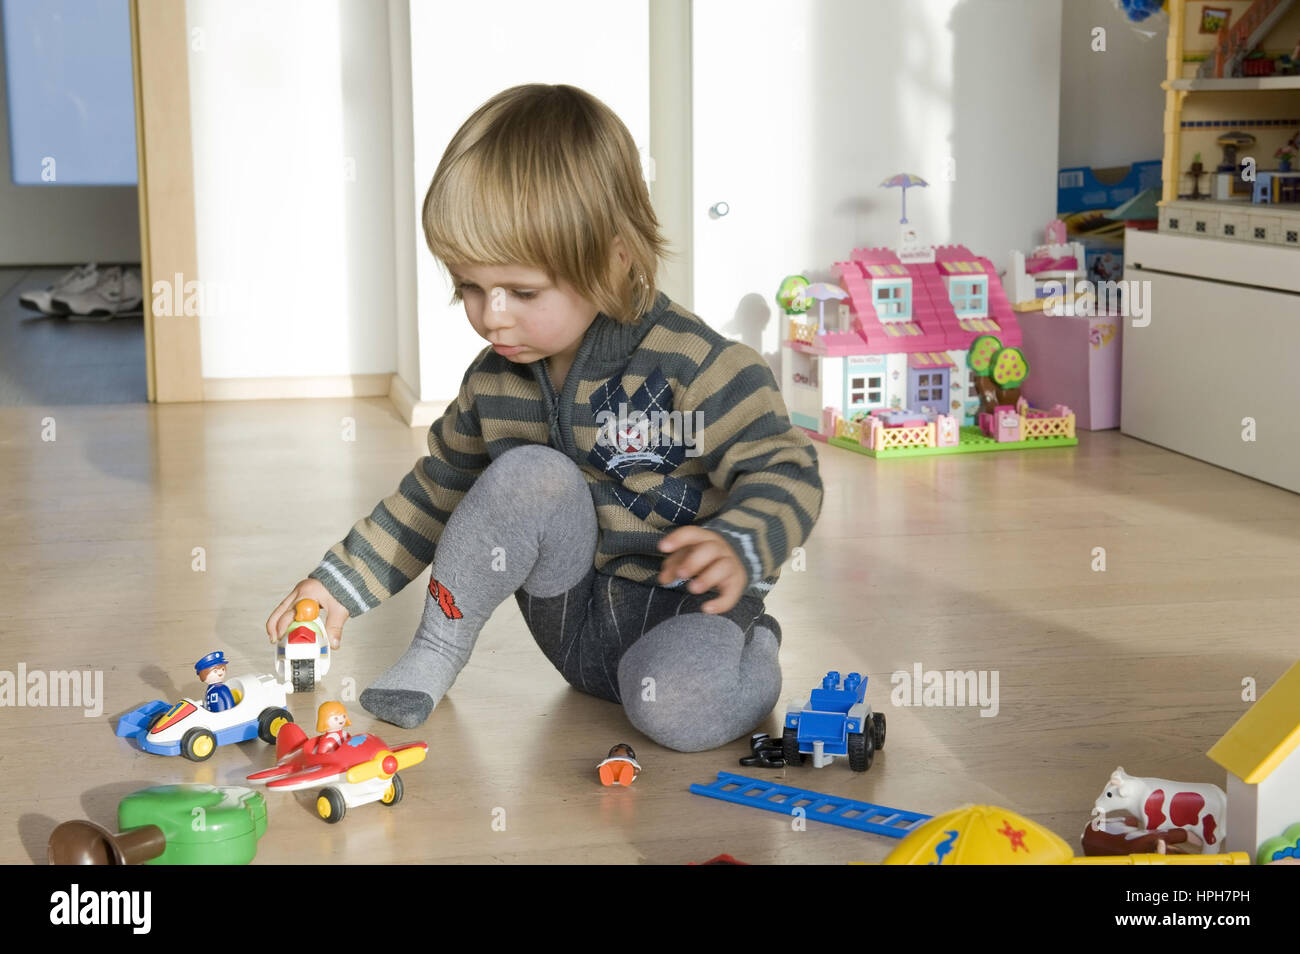 Kind spielt mirt Spielzeug am Fussboden - child playing with toys, Model released Stock Photo